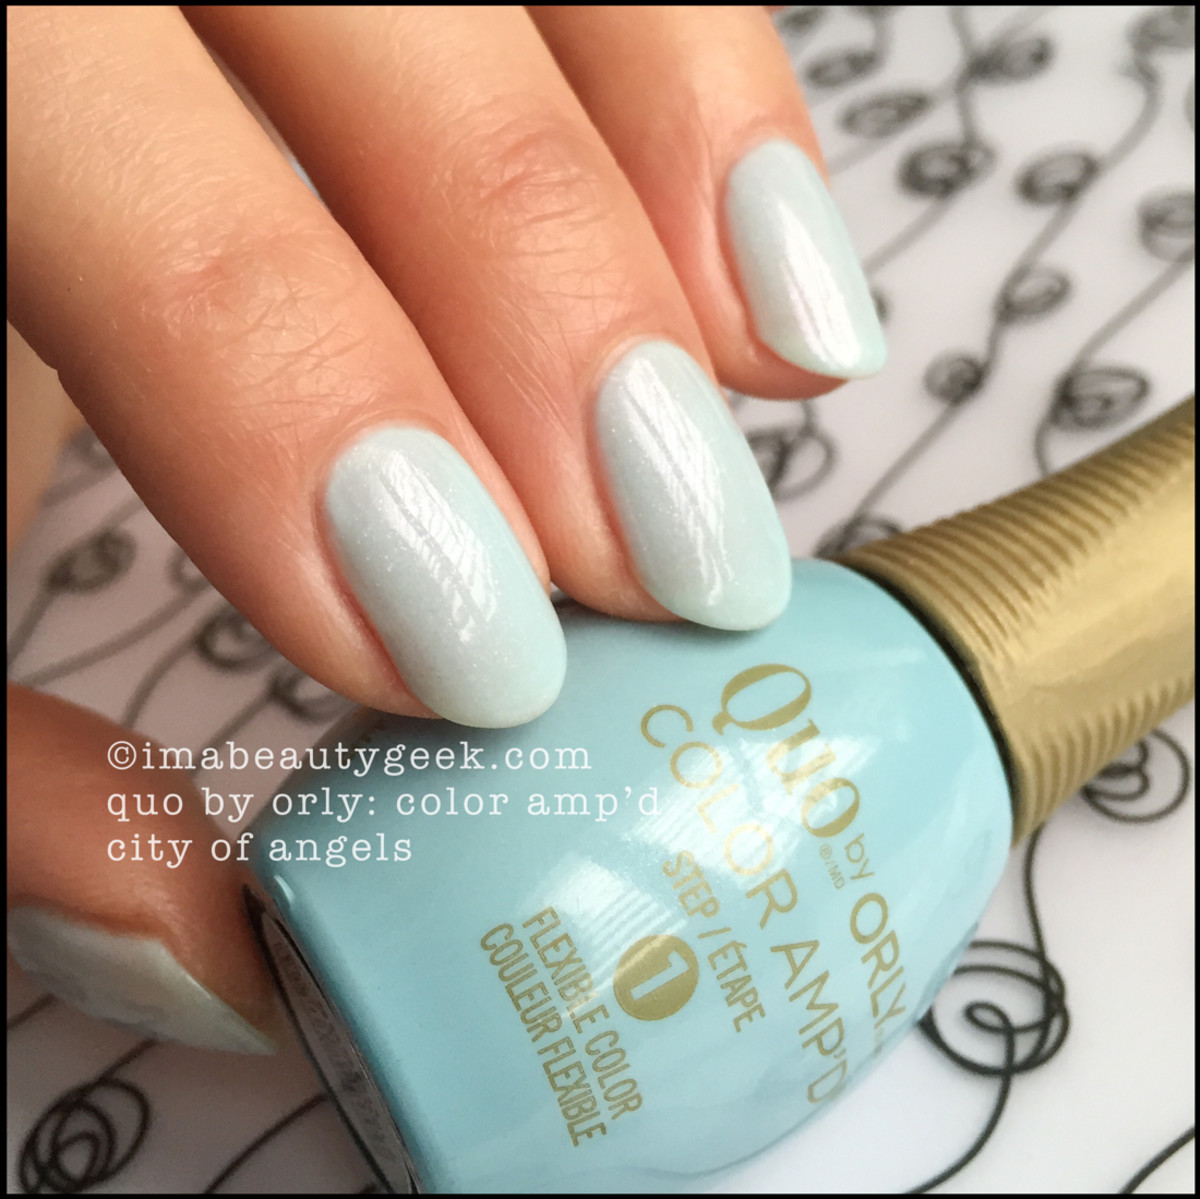 Quo Color Ampd City of Angels_Quo by Orly Swatches